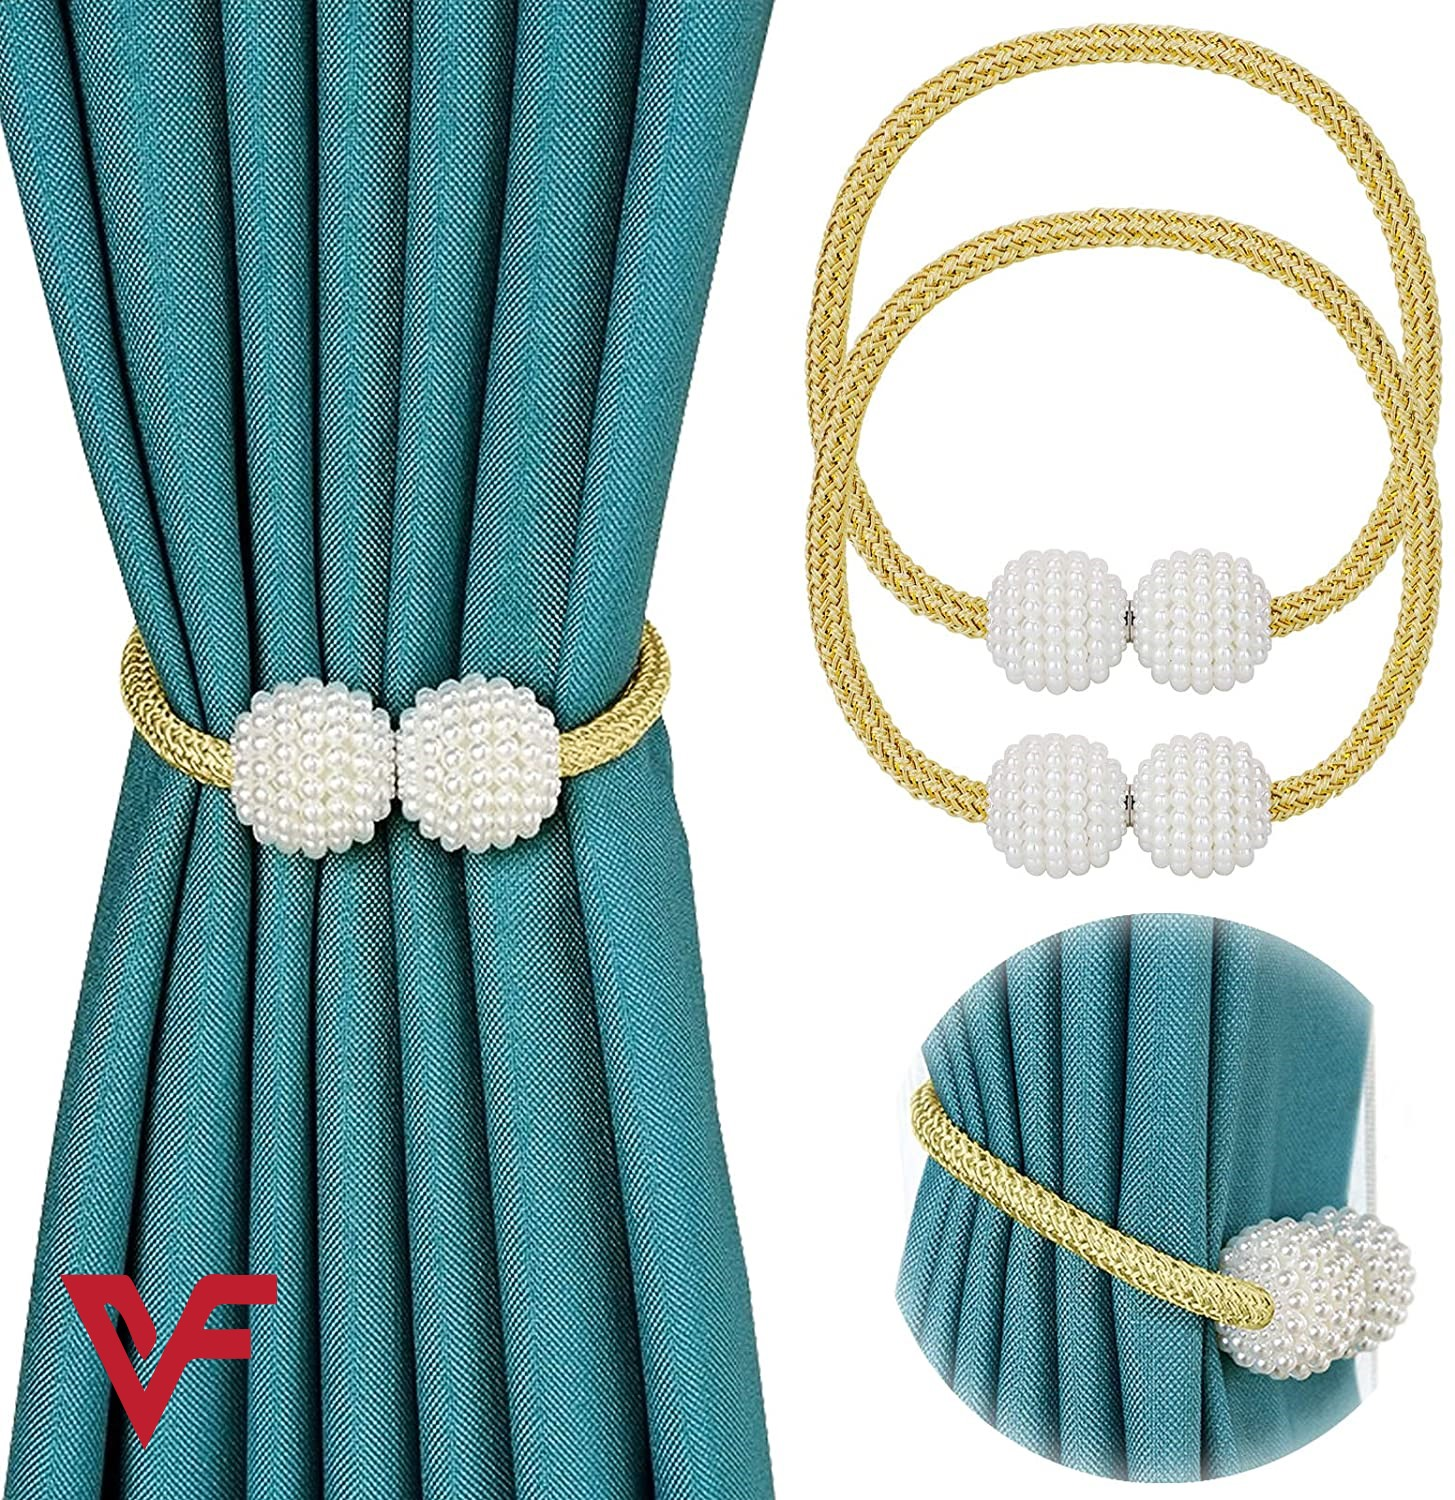 2pcs Parday Curtain Tiebacks Curtain Buckle Draperies Pearl Magnetic Rope Braided Straps Ball Buckles Rings & Buckles Holder Punch Free Curtains Hold Clips Curtain Accessories